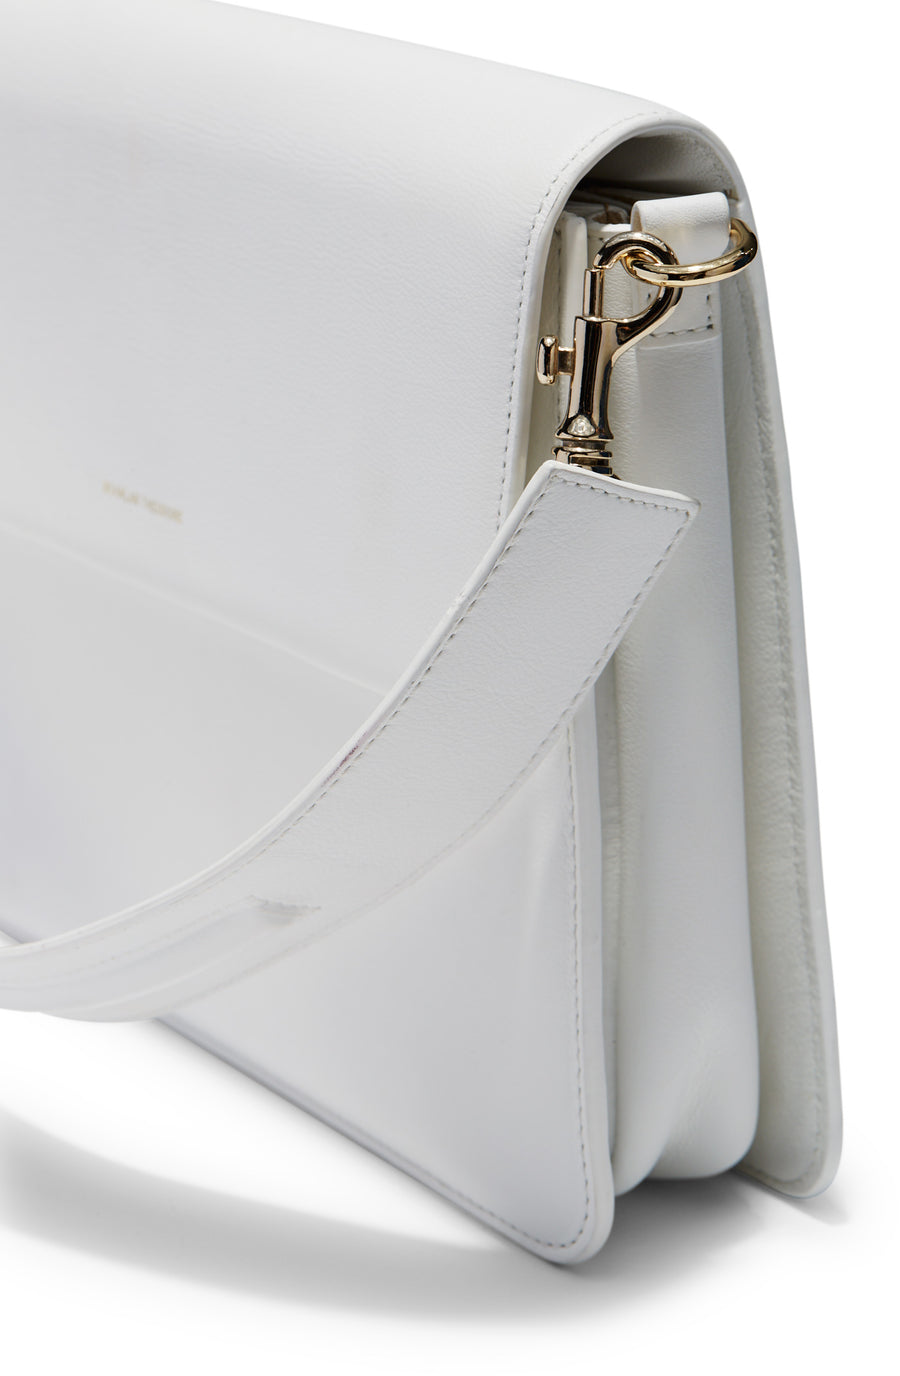 Mirra Bag includes short and long interchangeable leather strap, magnetic closure, suede lining, three internal compartments, one zip internal pocket, gold embossed logo, color bianco